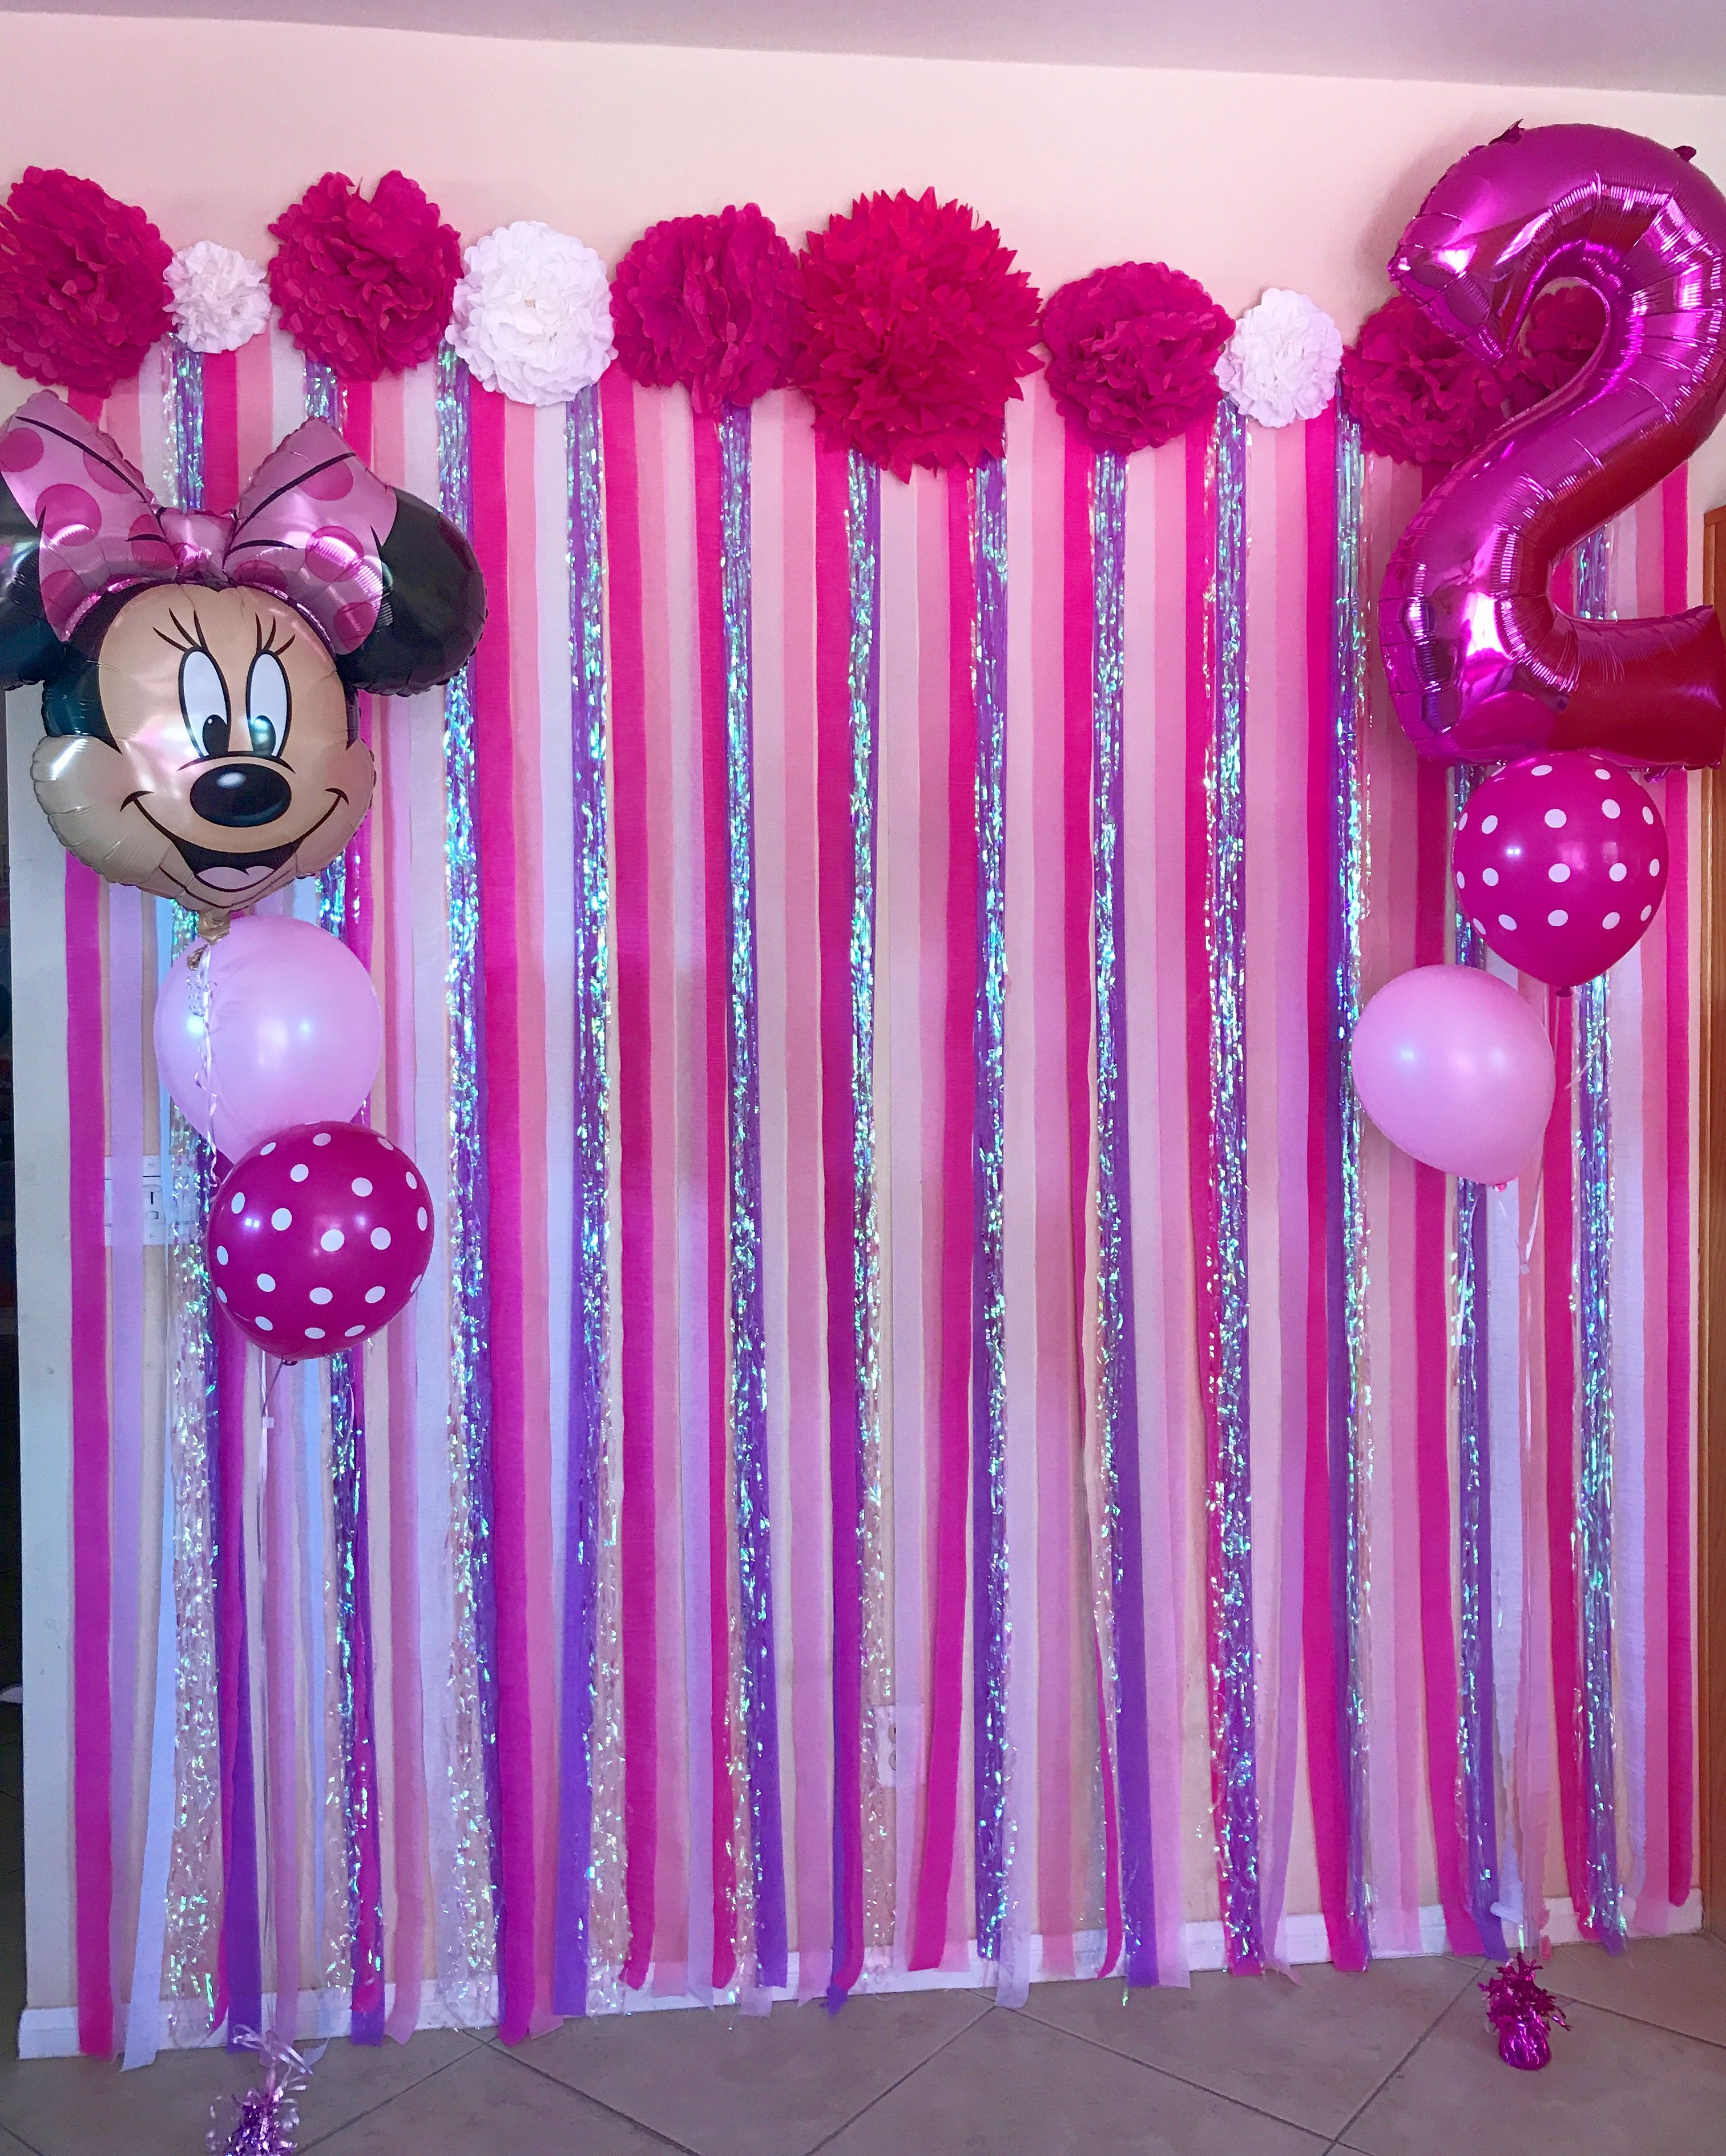 Diy Minnie Mouse Themed Photo Streamer Wall Minnie Mouse Birthday Party Decorations Minnie Mouse Theme Party Minnie Mouse First Birthday